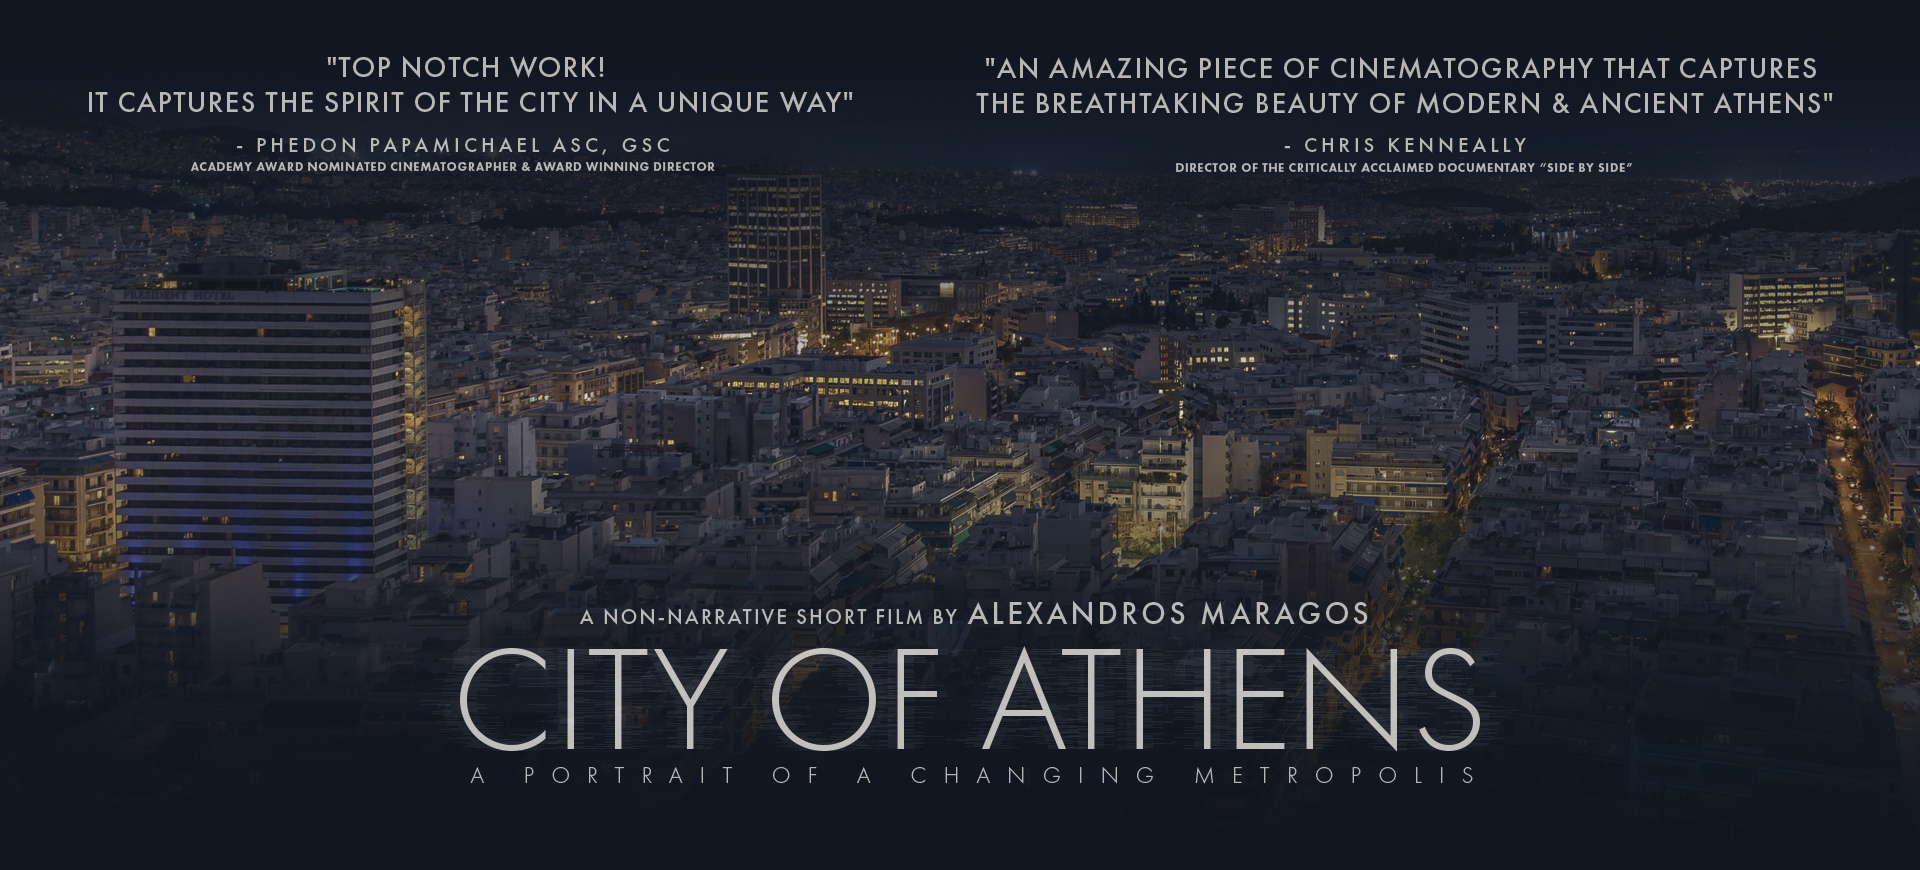 """City of Athens - A Portrait of a Changing Metropolis Screening at Tourism Awards 2018.Cultural Center Hellenic Cosmos """"Theatron""""Antigoni Hall - March 20, 2018"""